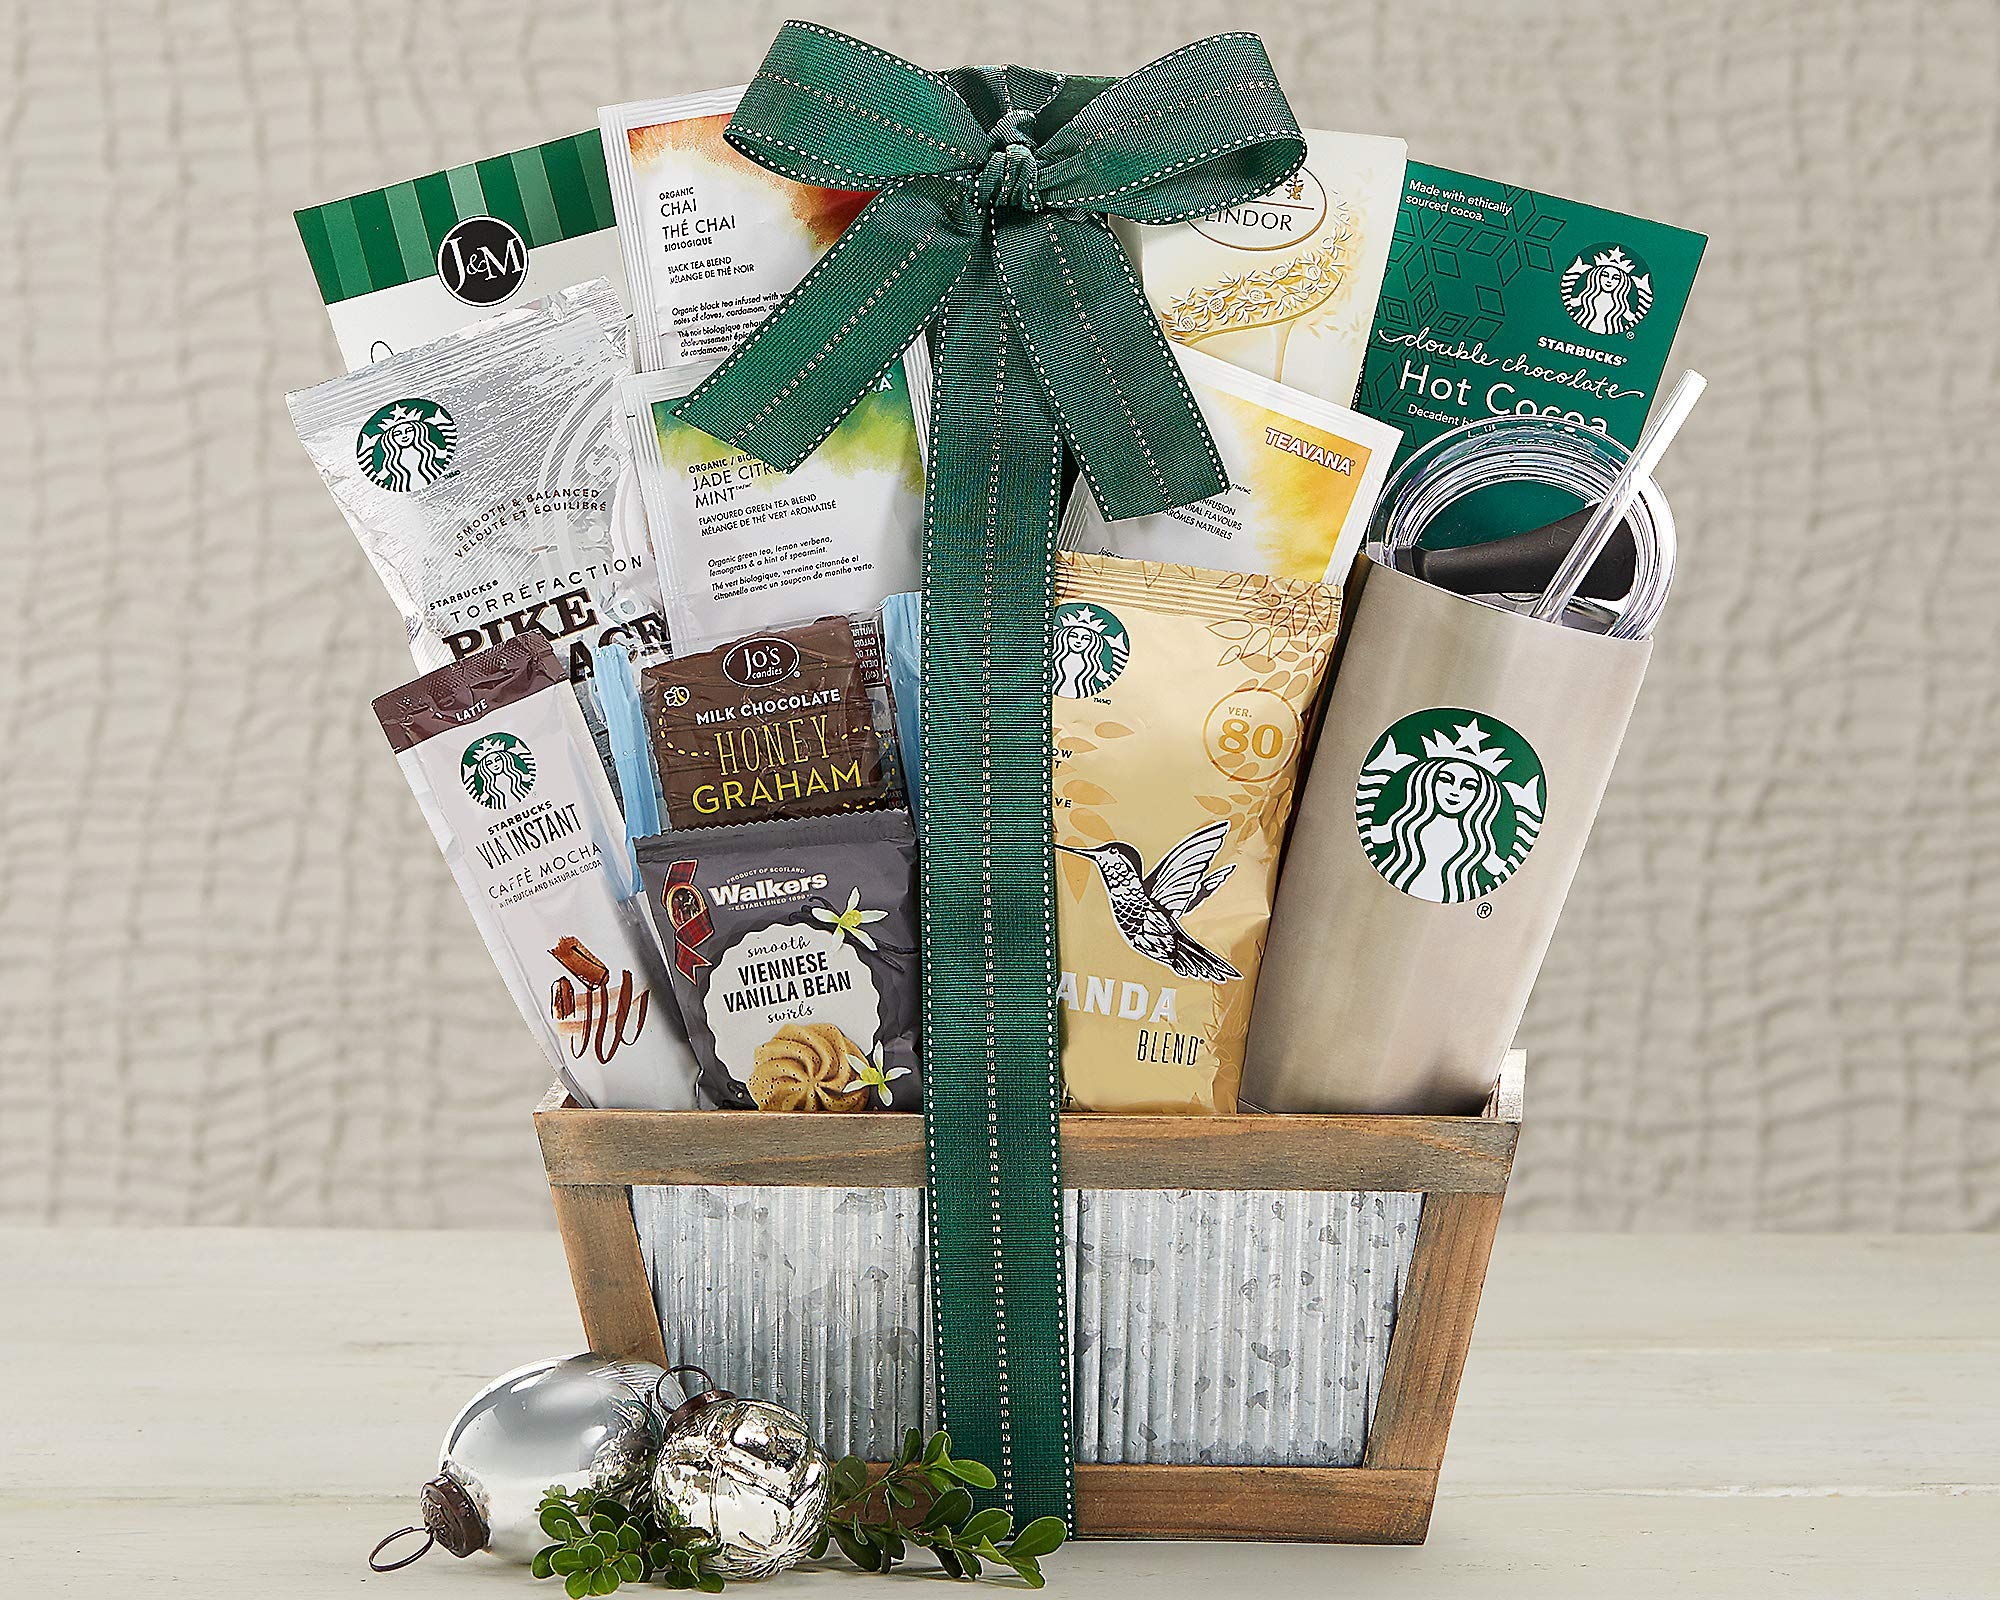 Starbucks Coffee and Teavana Tea Extravagant Gift Basket. A Delectable Gift Idea For Birthday, Baby Shower, Holiday Gift or as a Corporate Gift. Brew It At Home or at the Office ! by Wine Country Gift Baskets (Image #2)